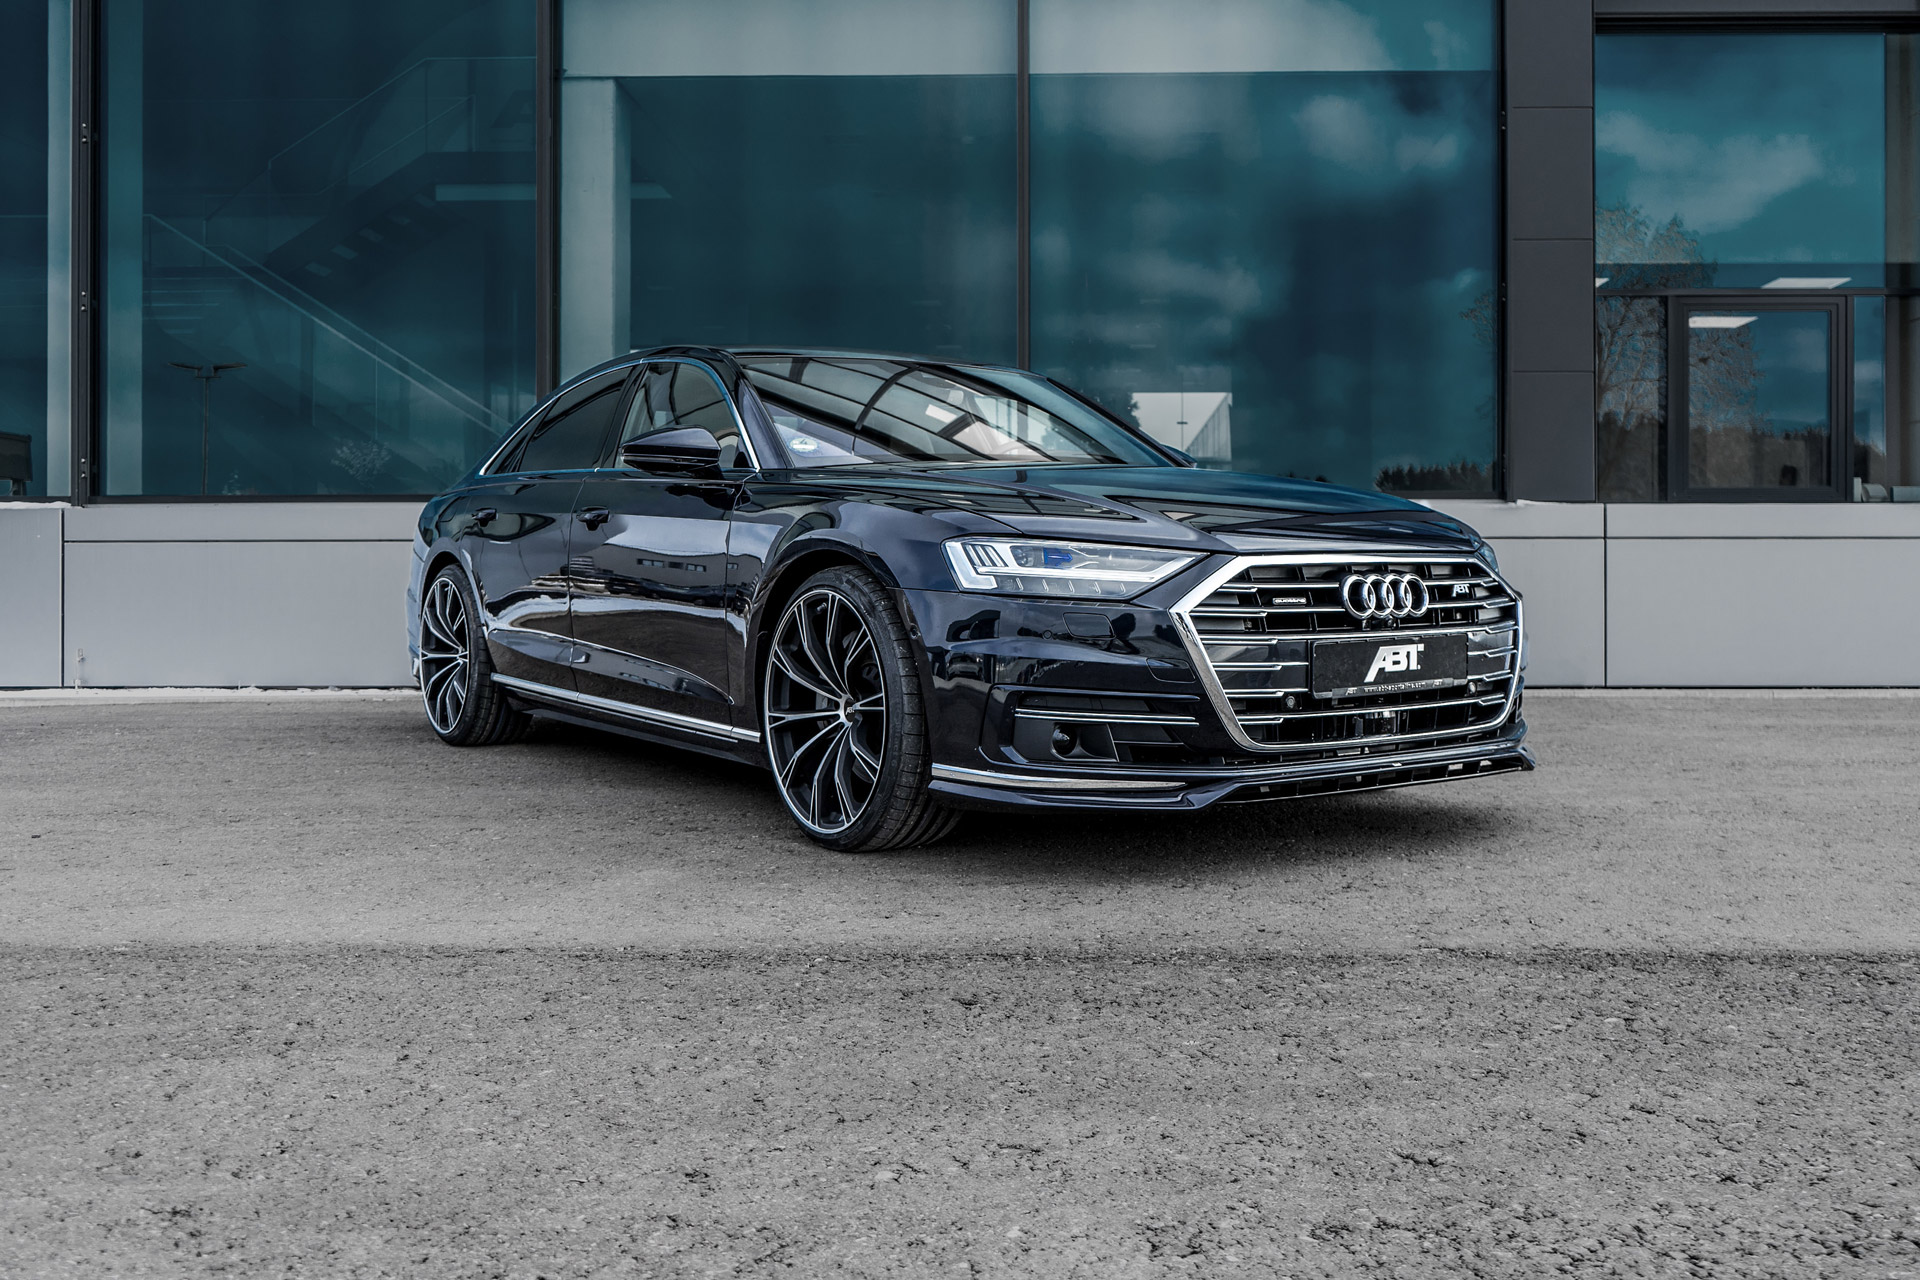 Audi A8 Abt Hd Wallpapers